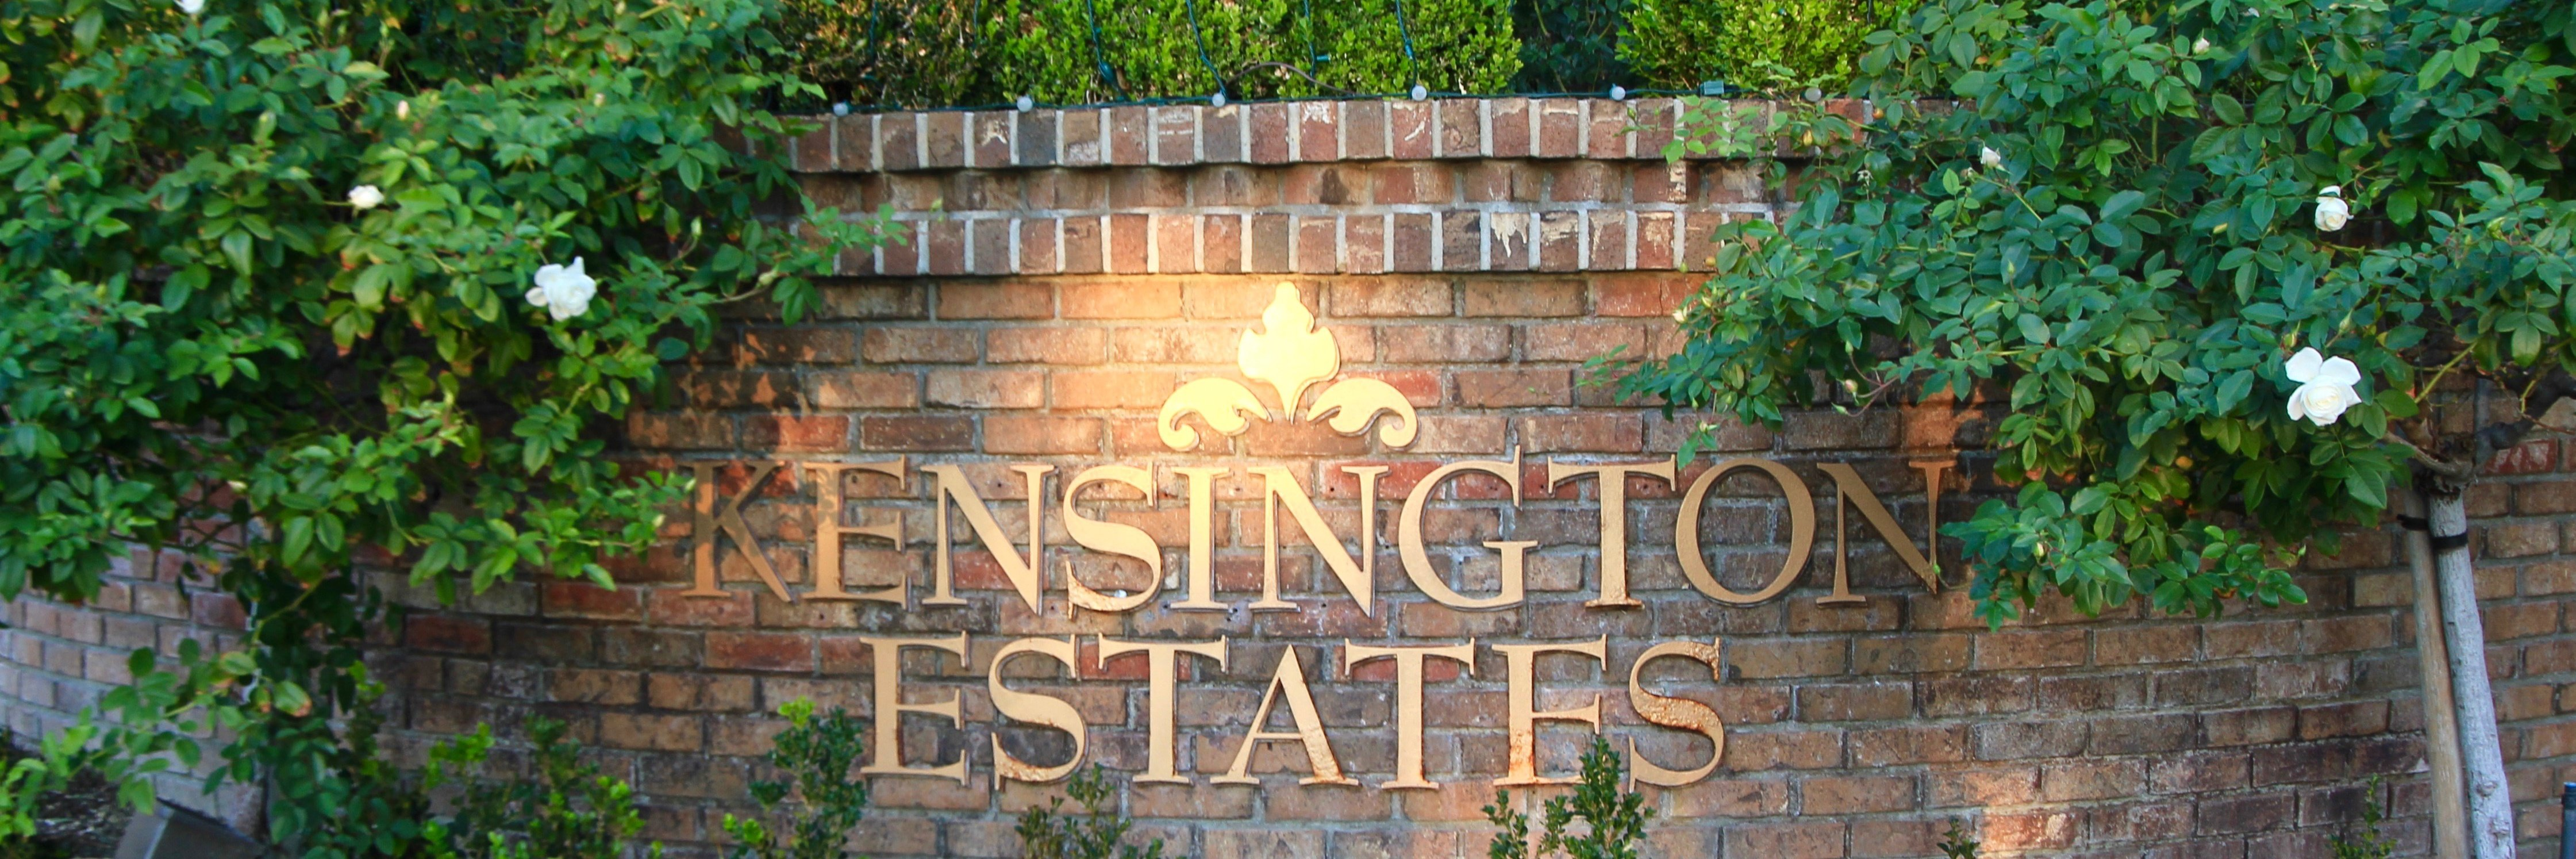 Kensington Estates Community Marquee in Aliso Viejo Ca